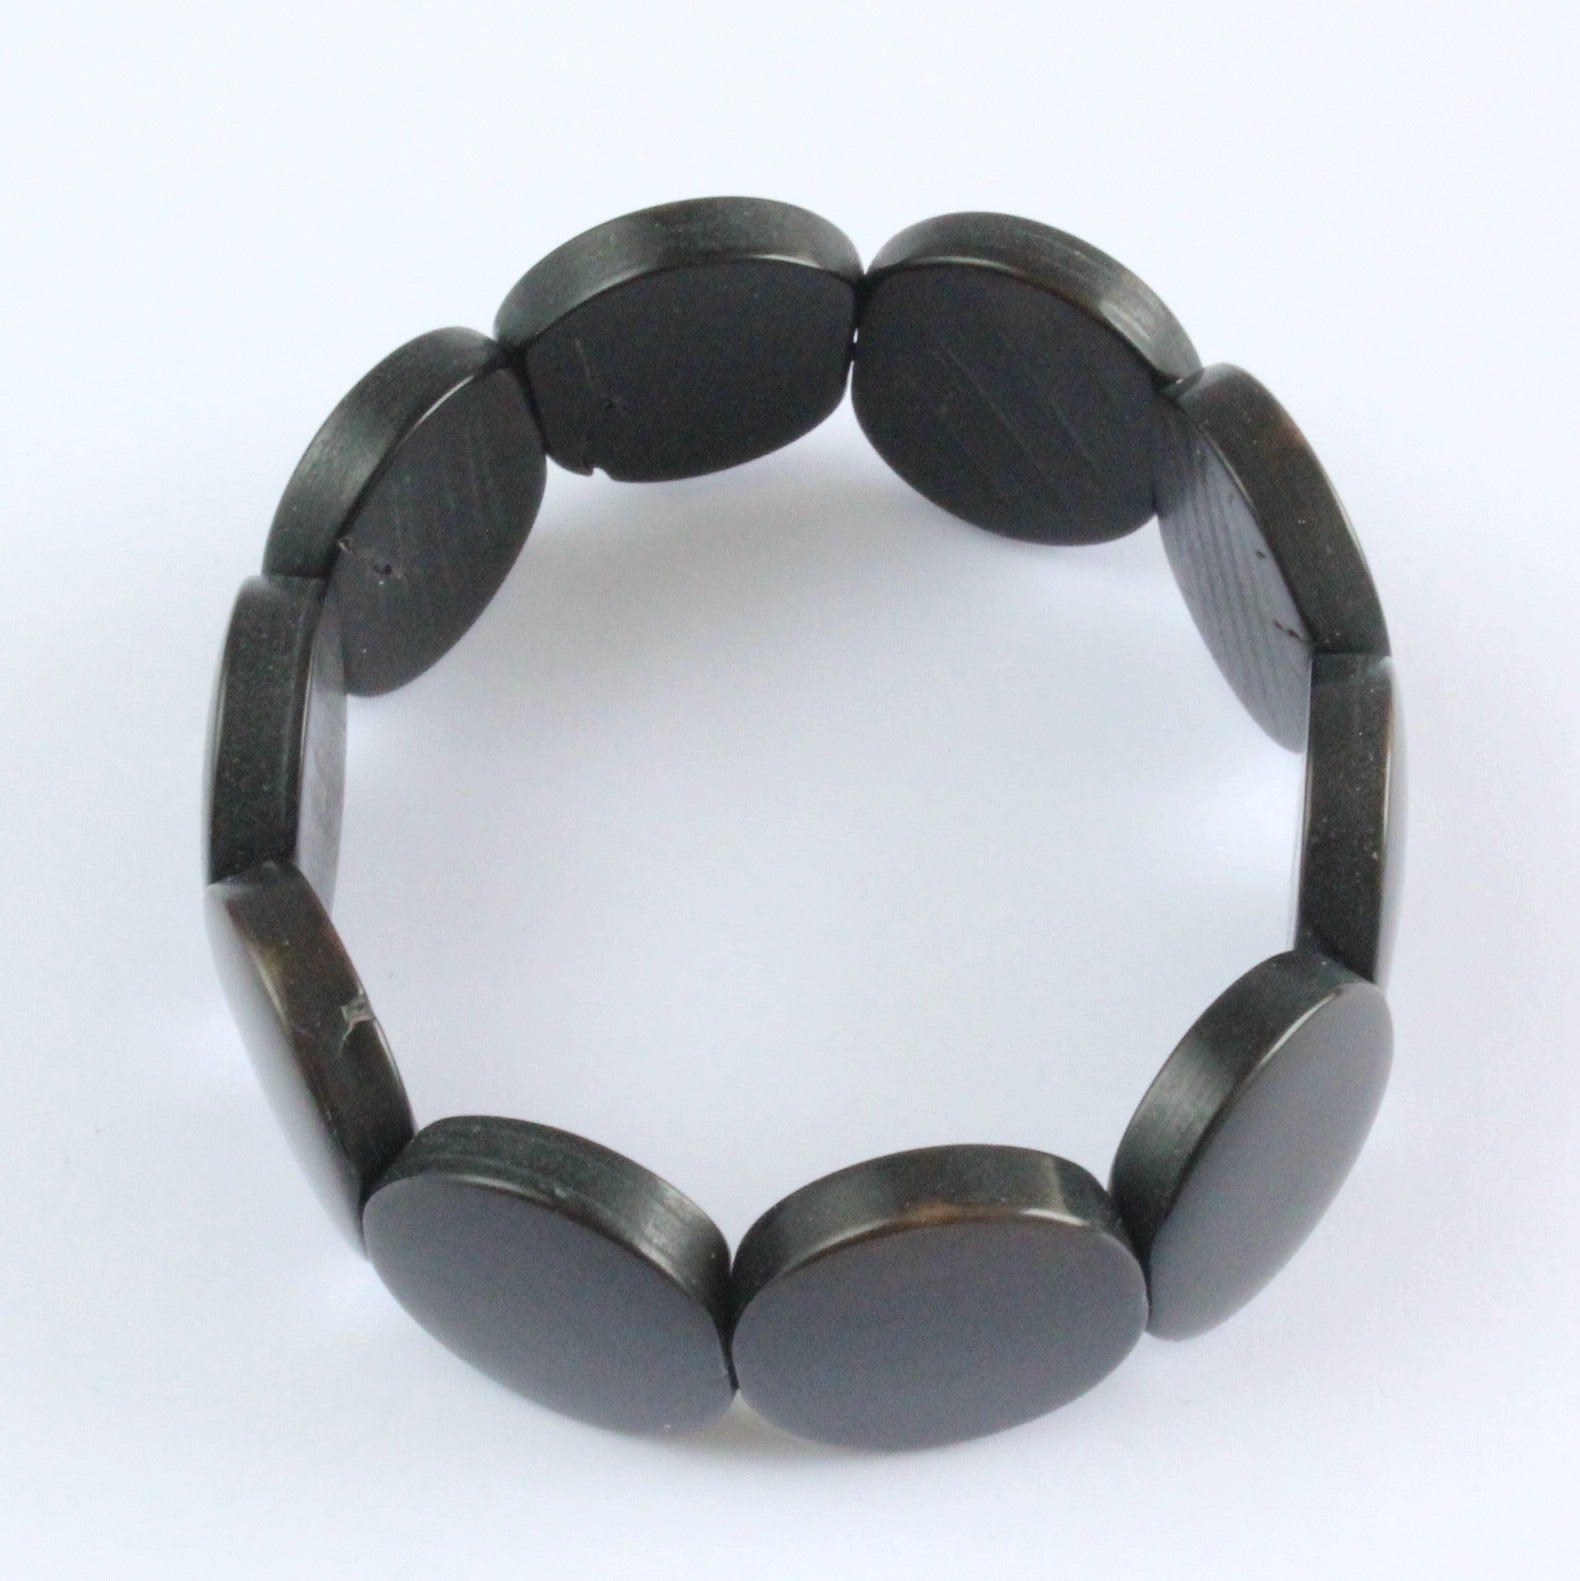 Handmade bracelet, tagua nut, sustainable,  colourful, black